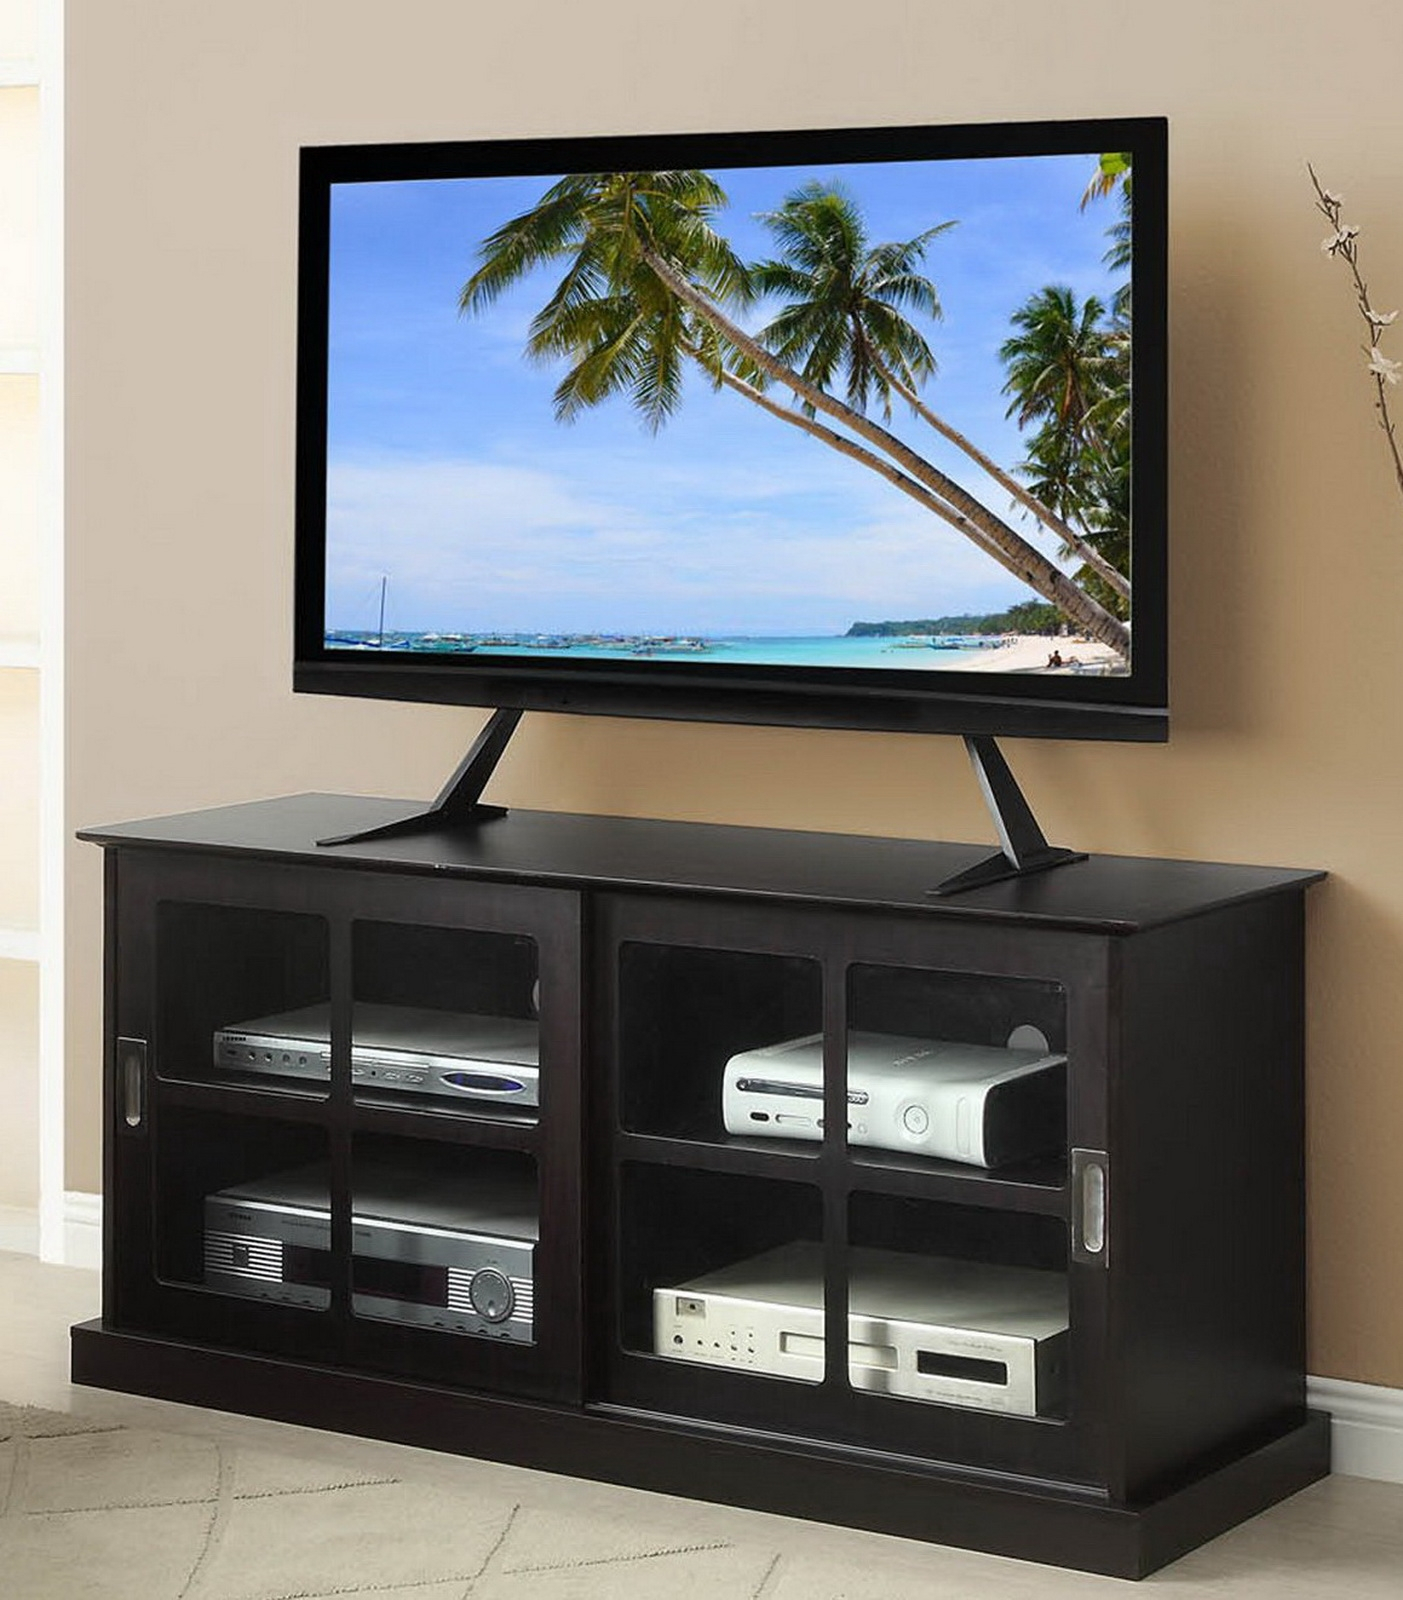 Table Top Flat Screen Tv Stand Inside Easel Tv Stands For Flat Screens (View 8 of 15)